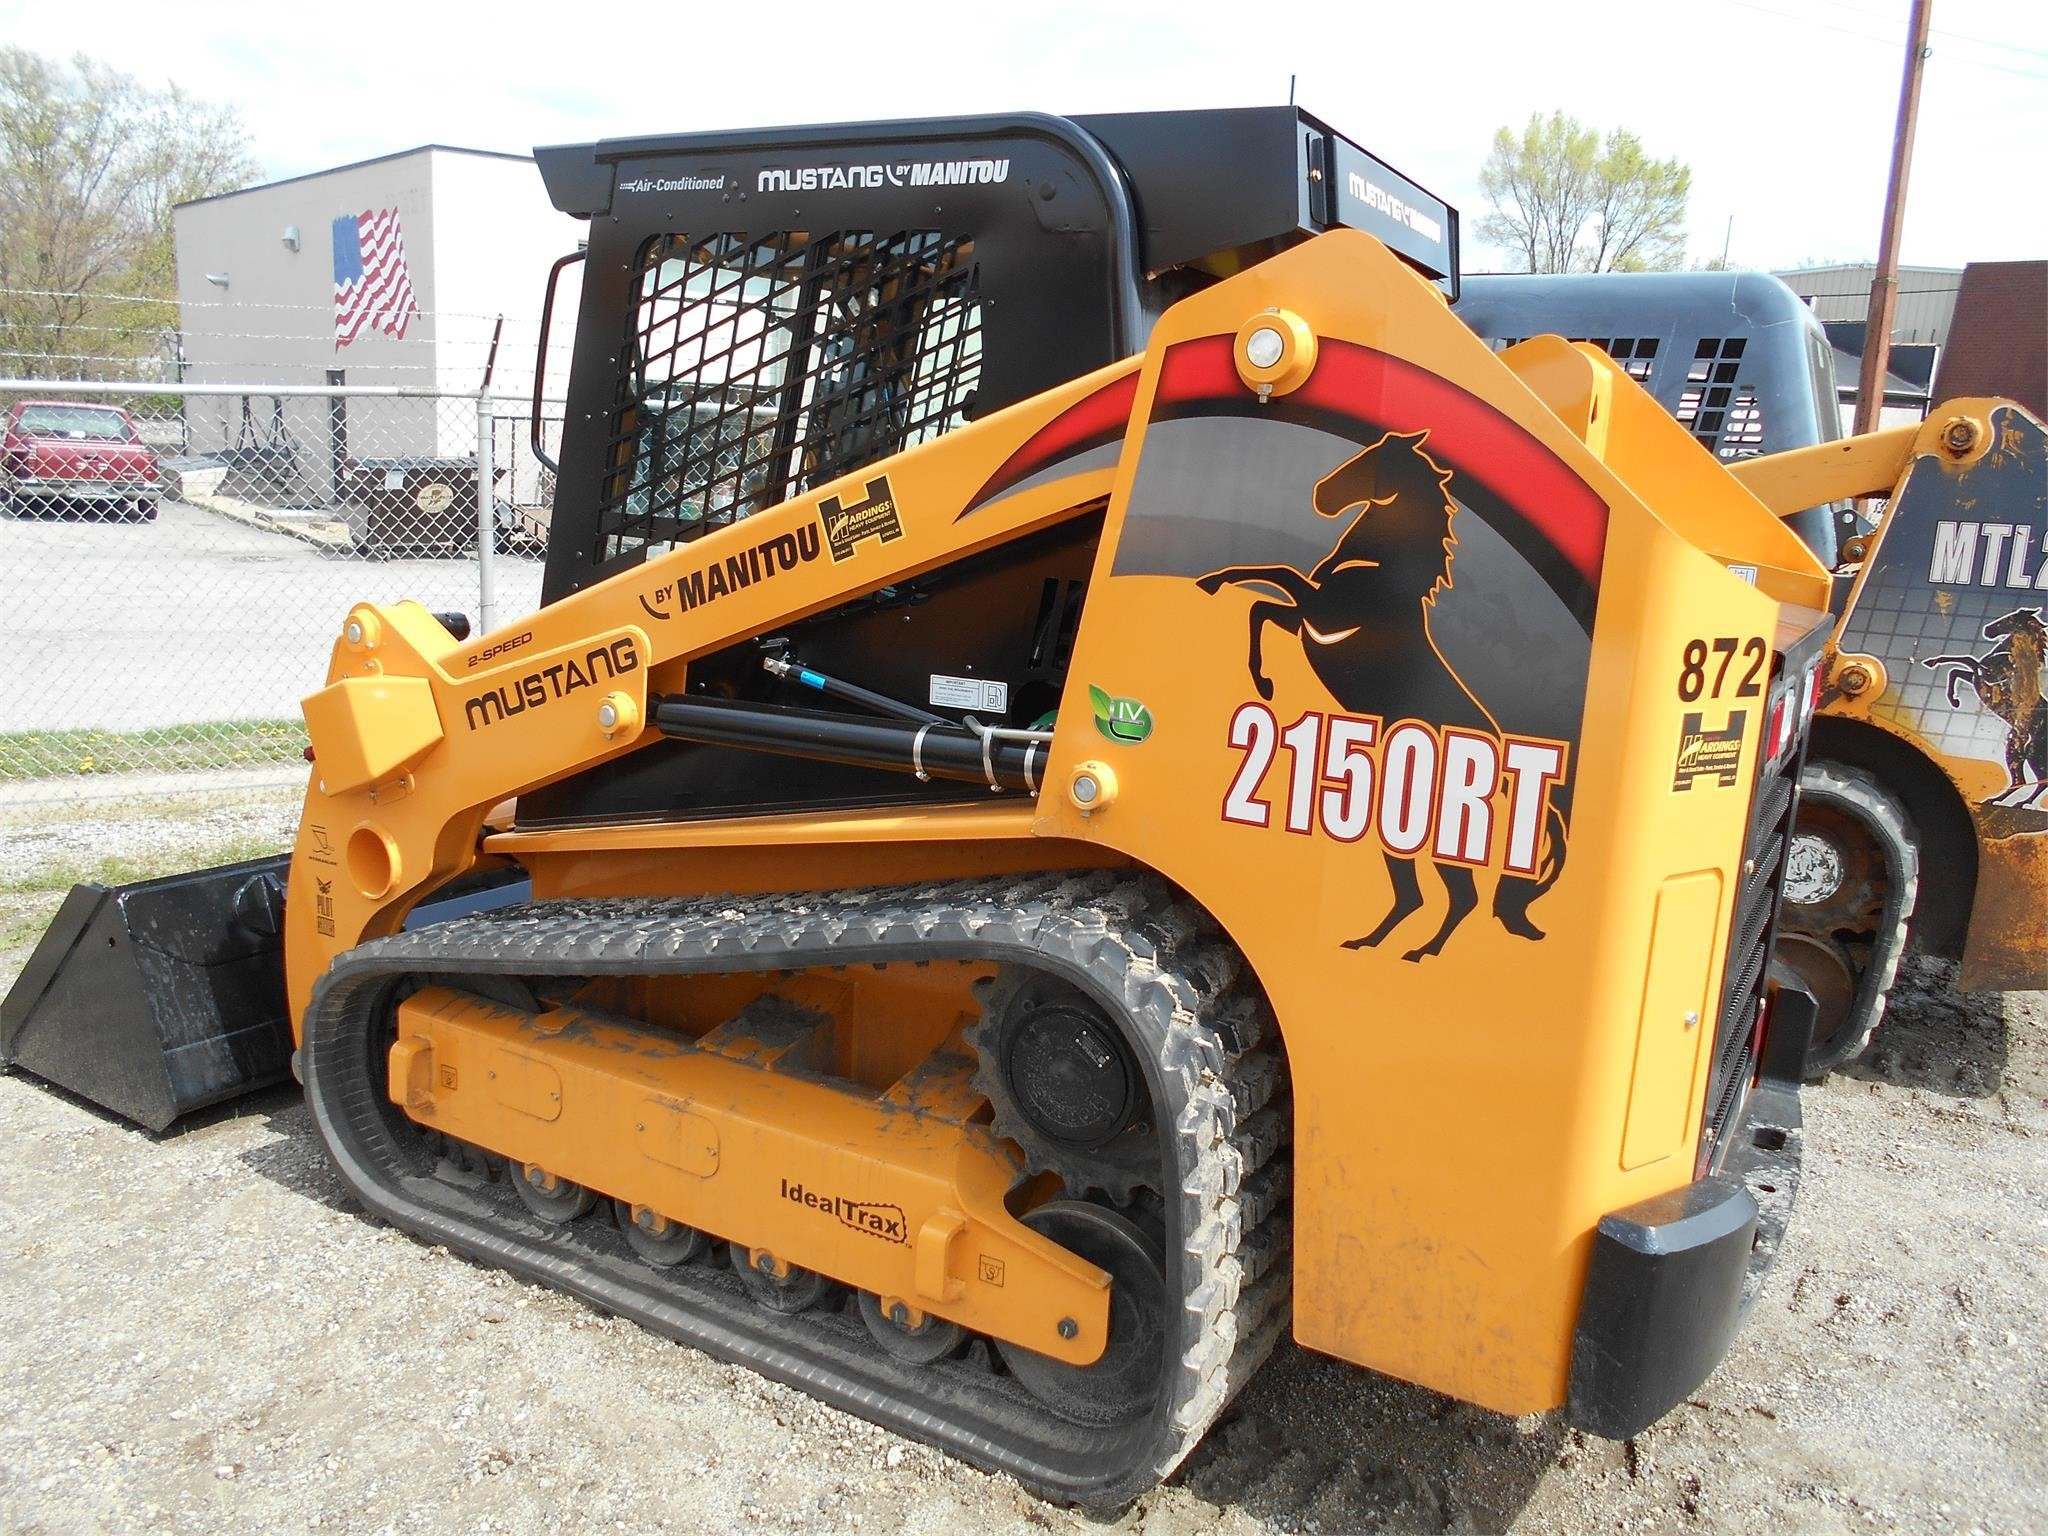 New, 2019, MUSTANG, 2150RT, Skid Steers - Track